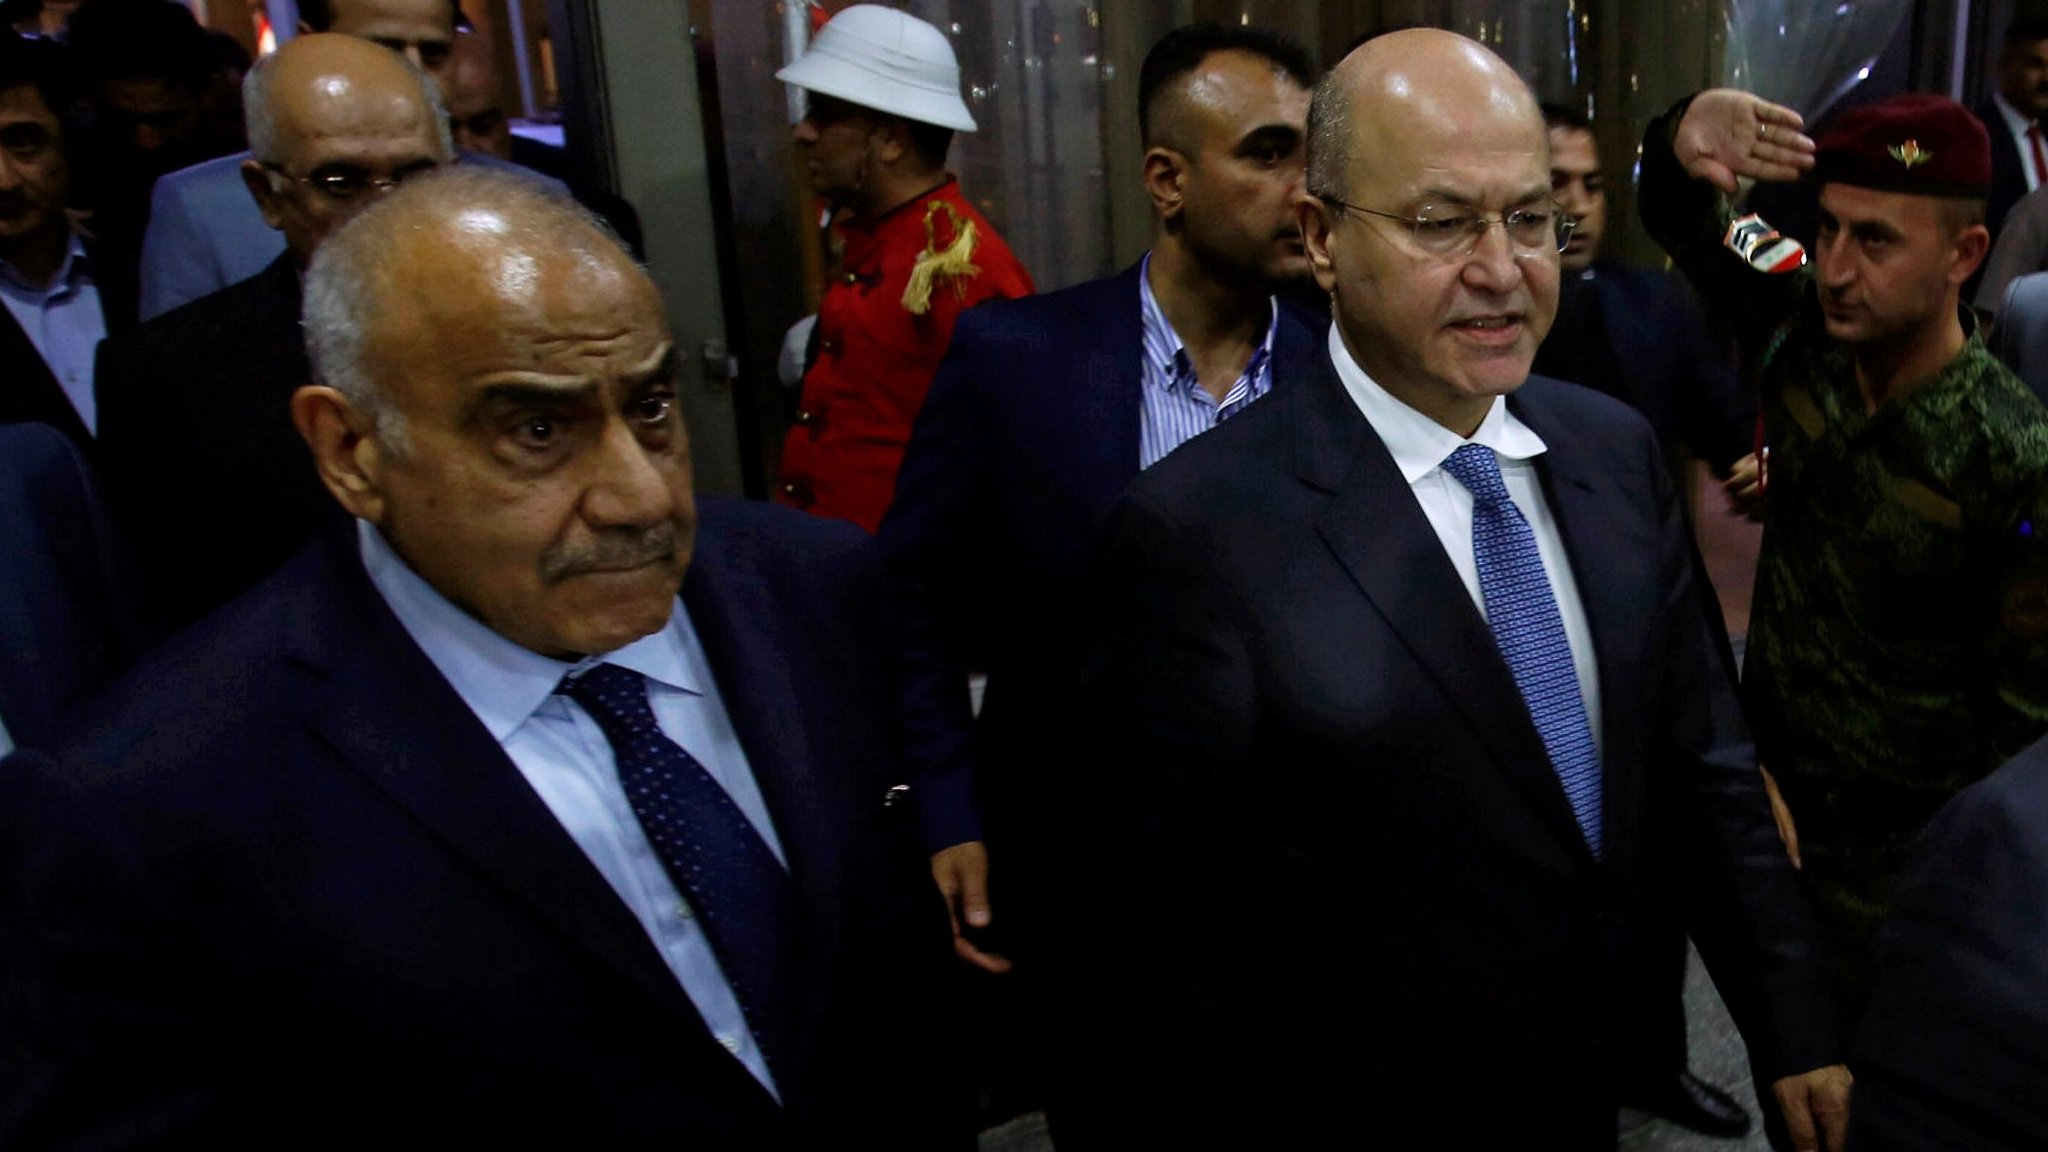 New Iraq President Barham Saleh names Adel Abdul Mahdi as PM